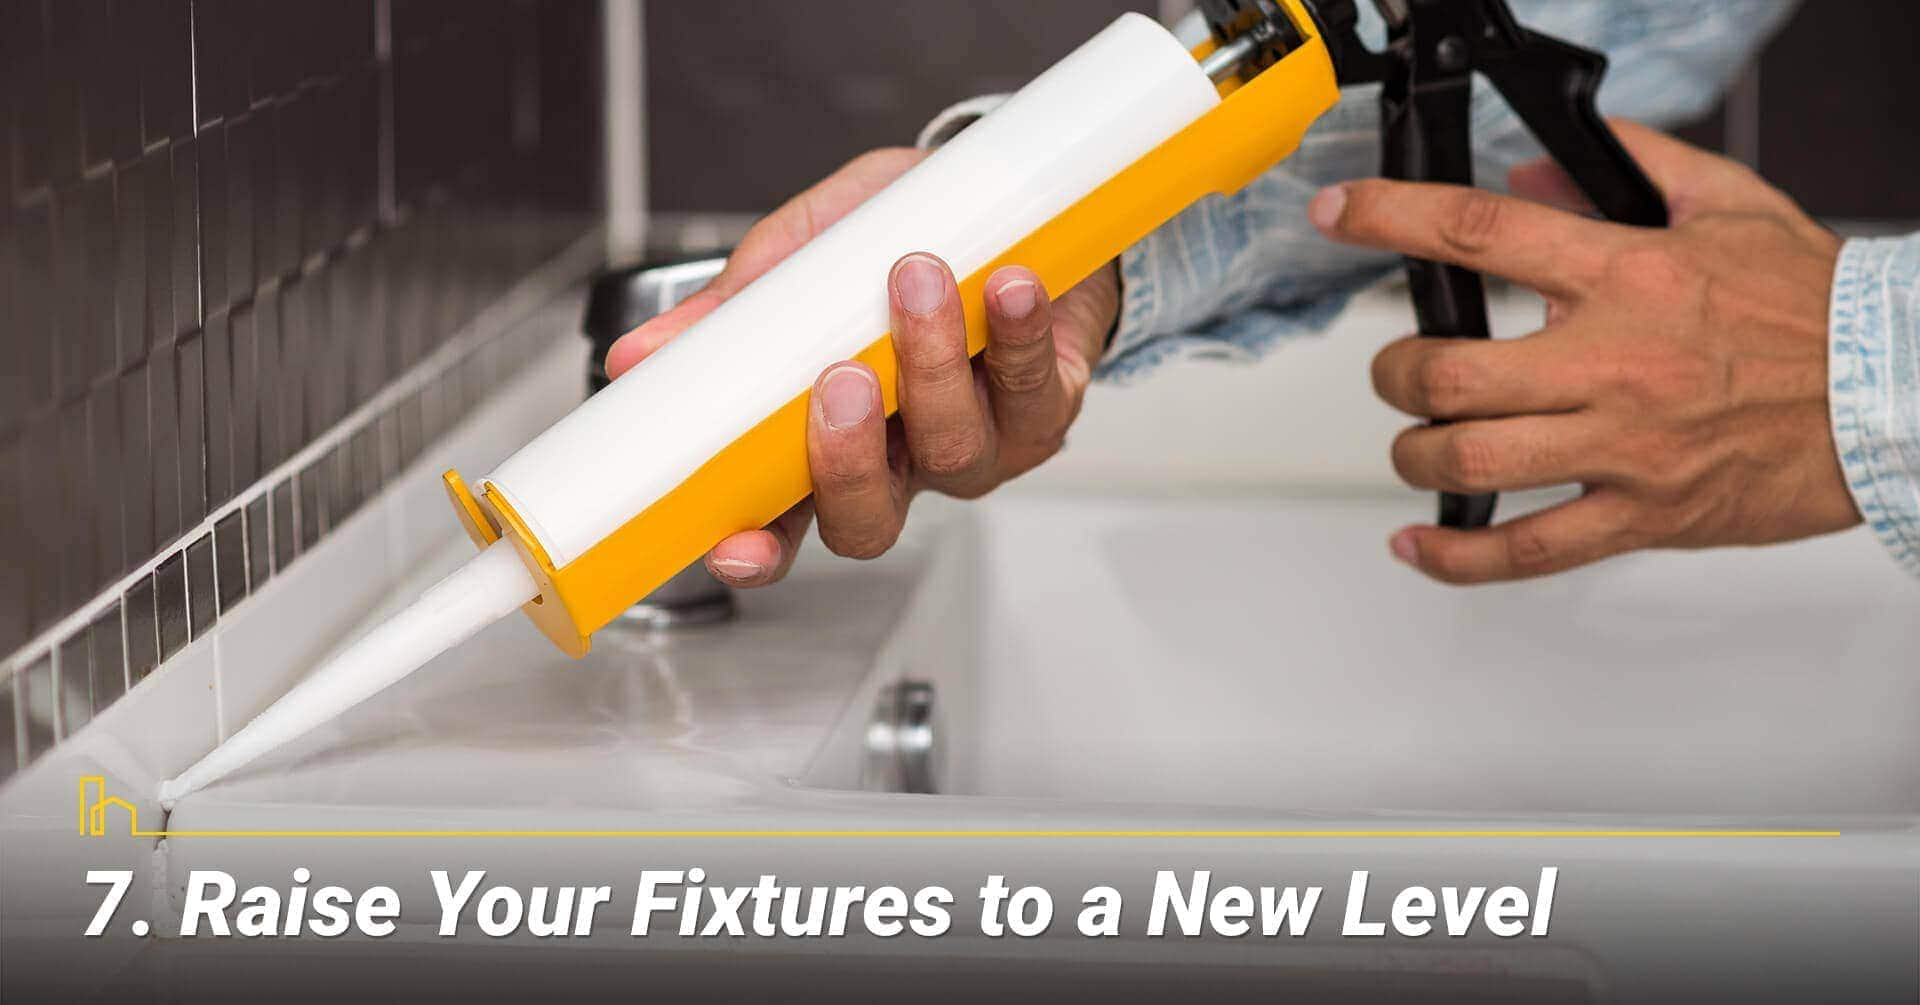 Raise Your Fixtures to a New Level